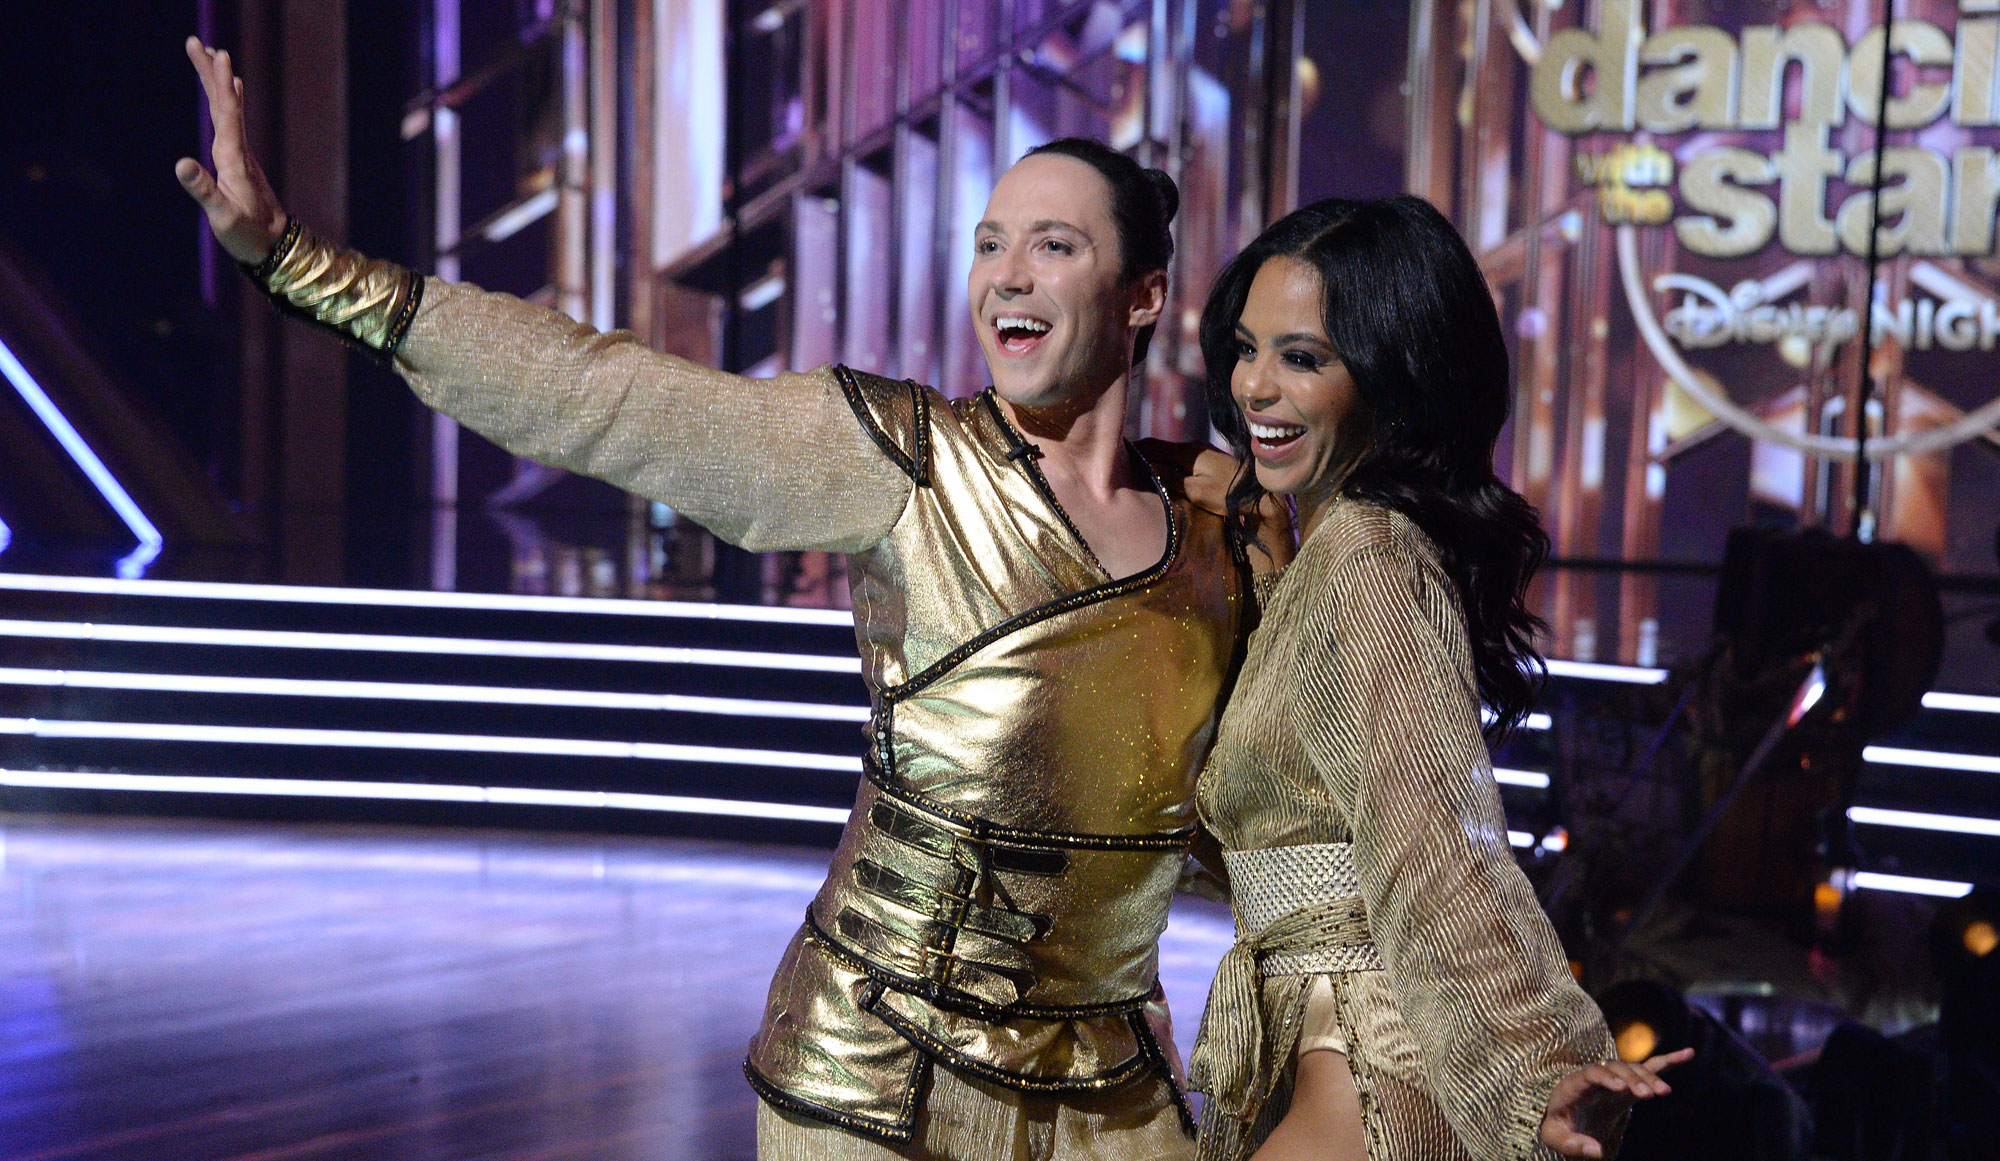 Johnny Weir finally breaks through on 'Dancing with the Stars' with this 'Mulan' rumba inspired by his family [WATCH]